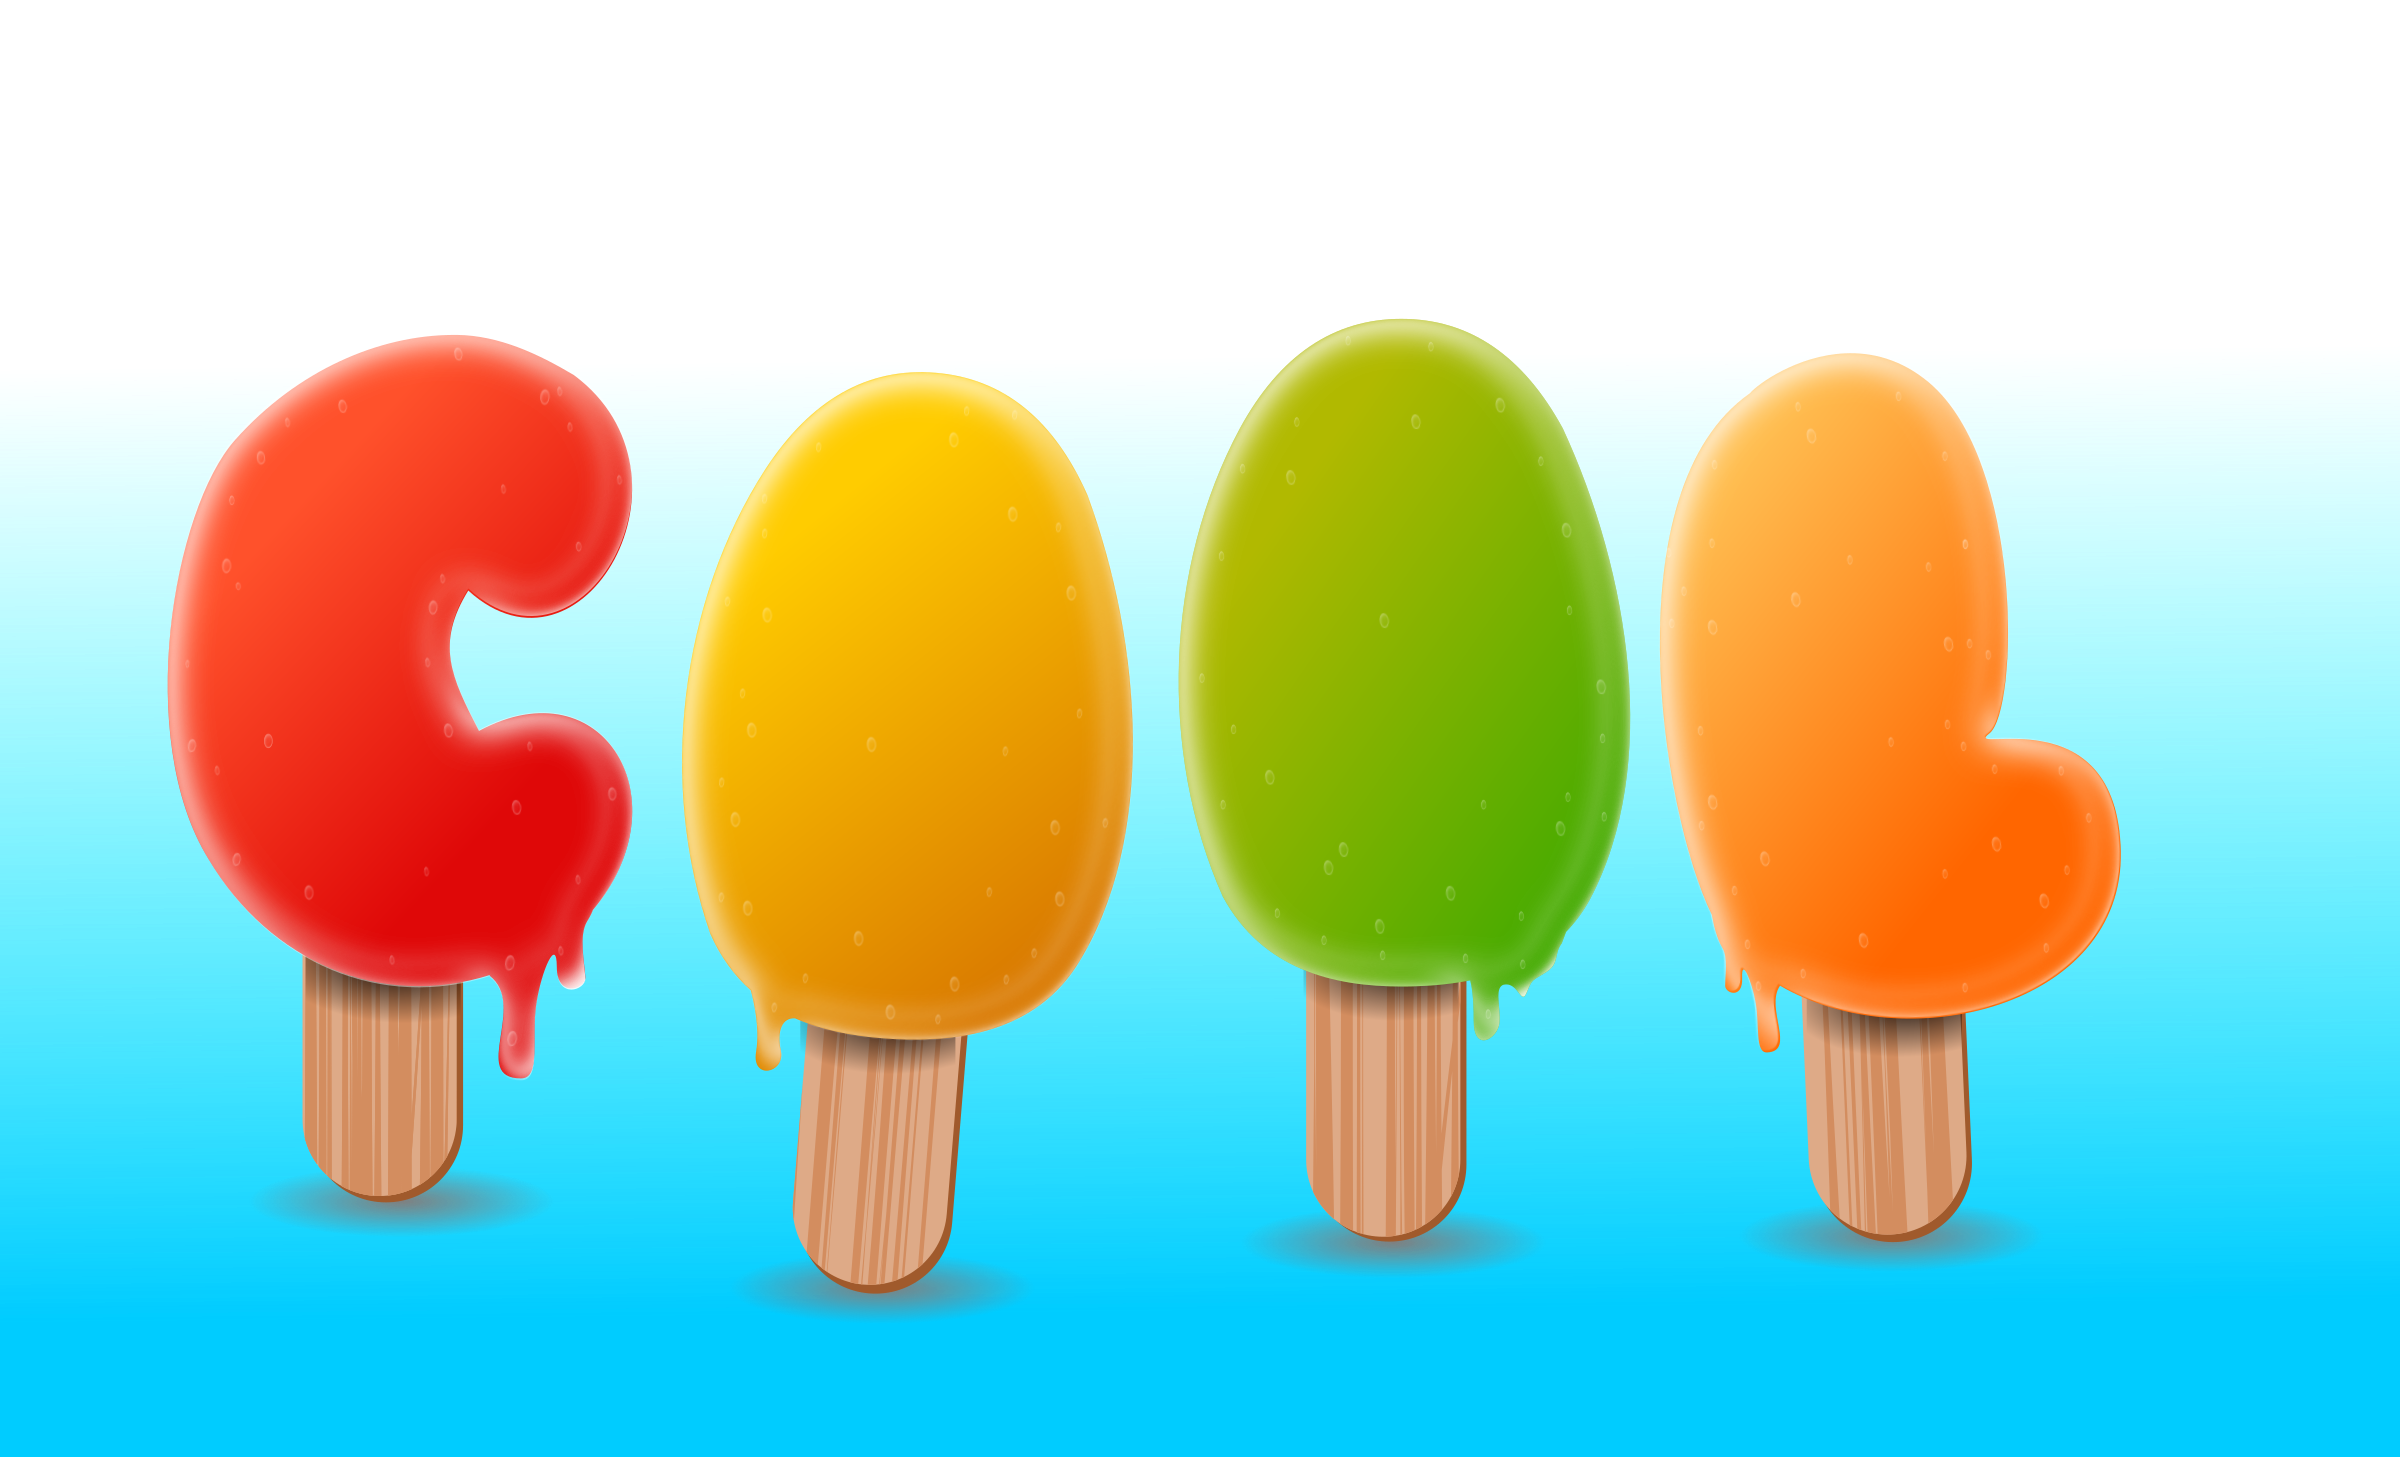 ice popcicle text by Chrisdesign